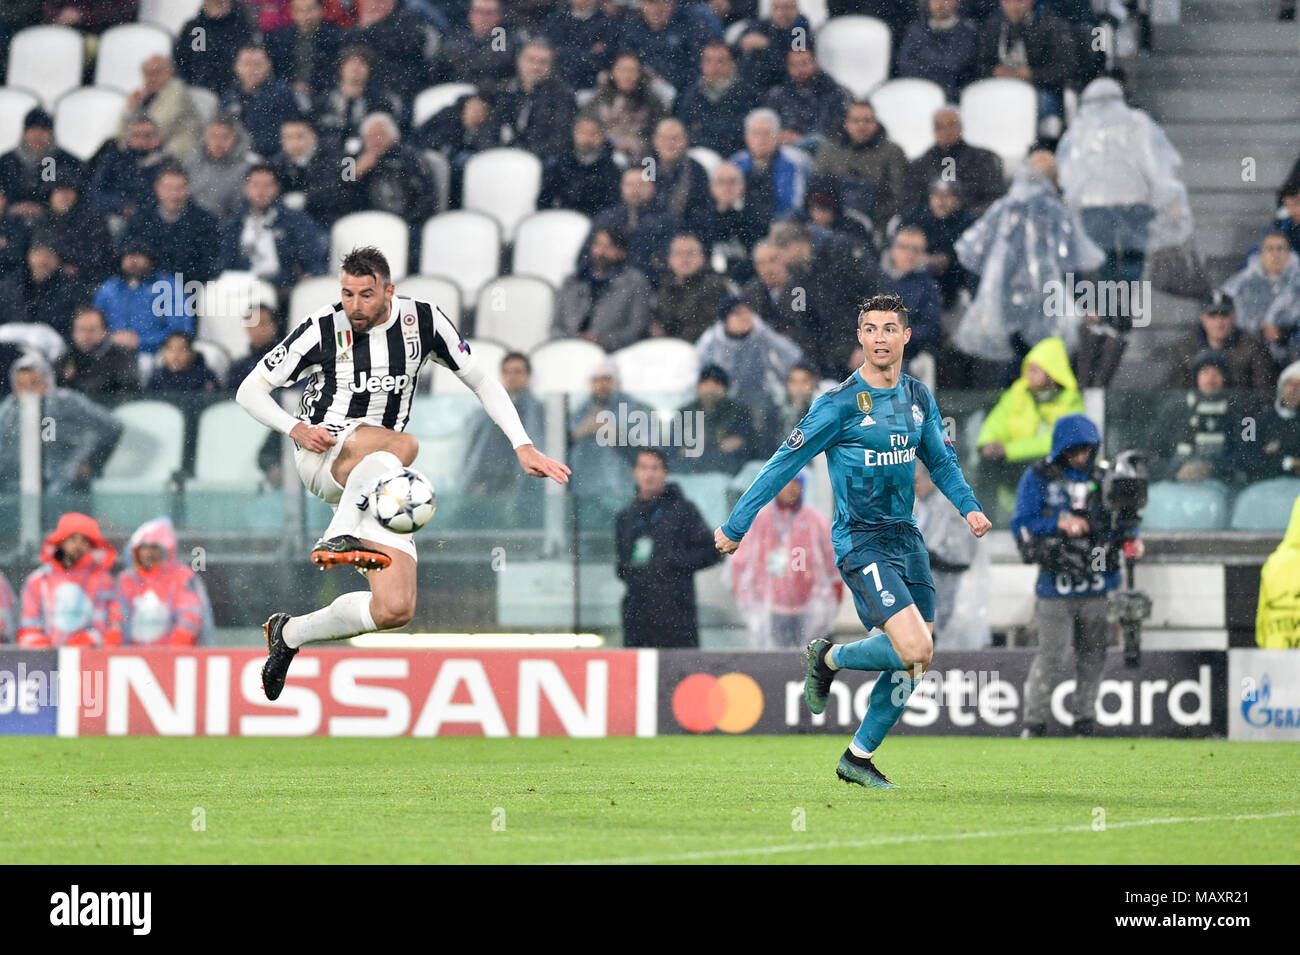 Juventus Football Club: Juventus Vs Real Madrid Stock Photos & Juventus Vs Real